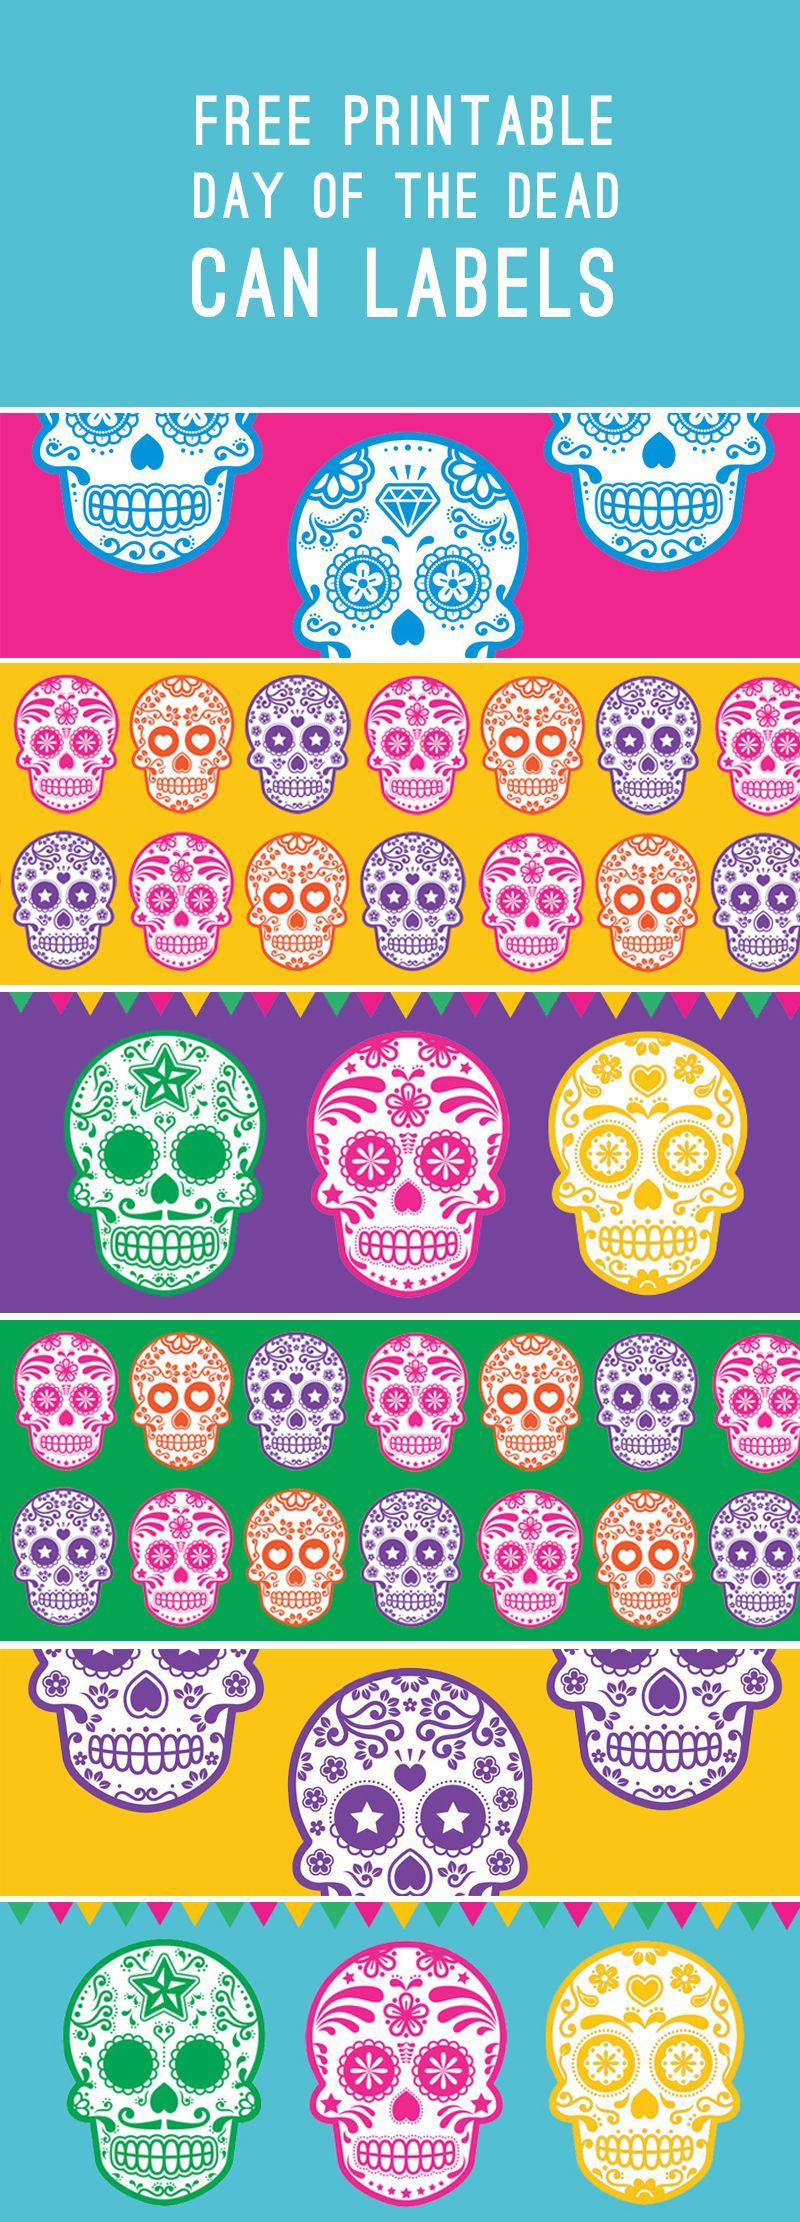 free printable day of the dead can tin labels for halloween